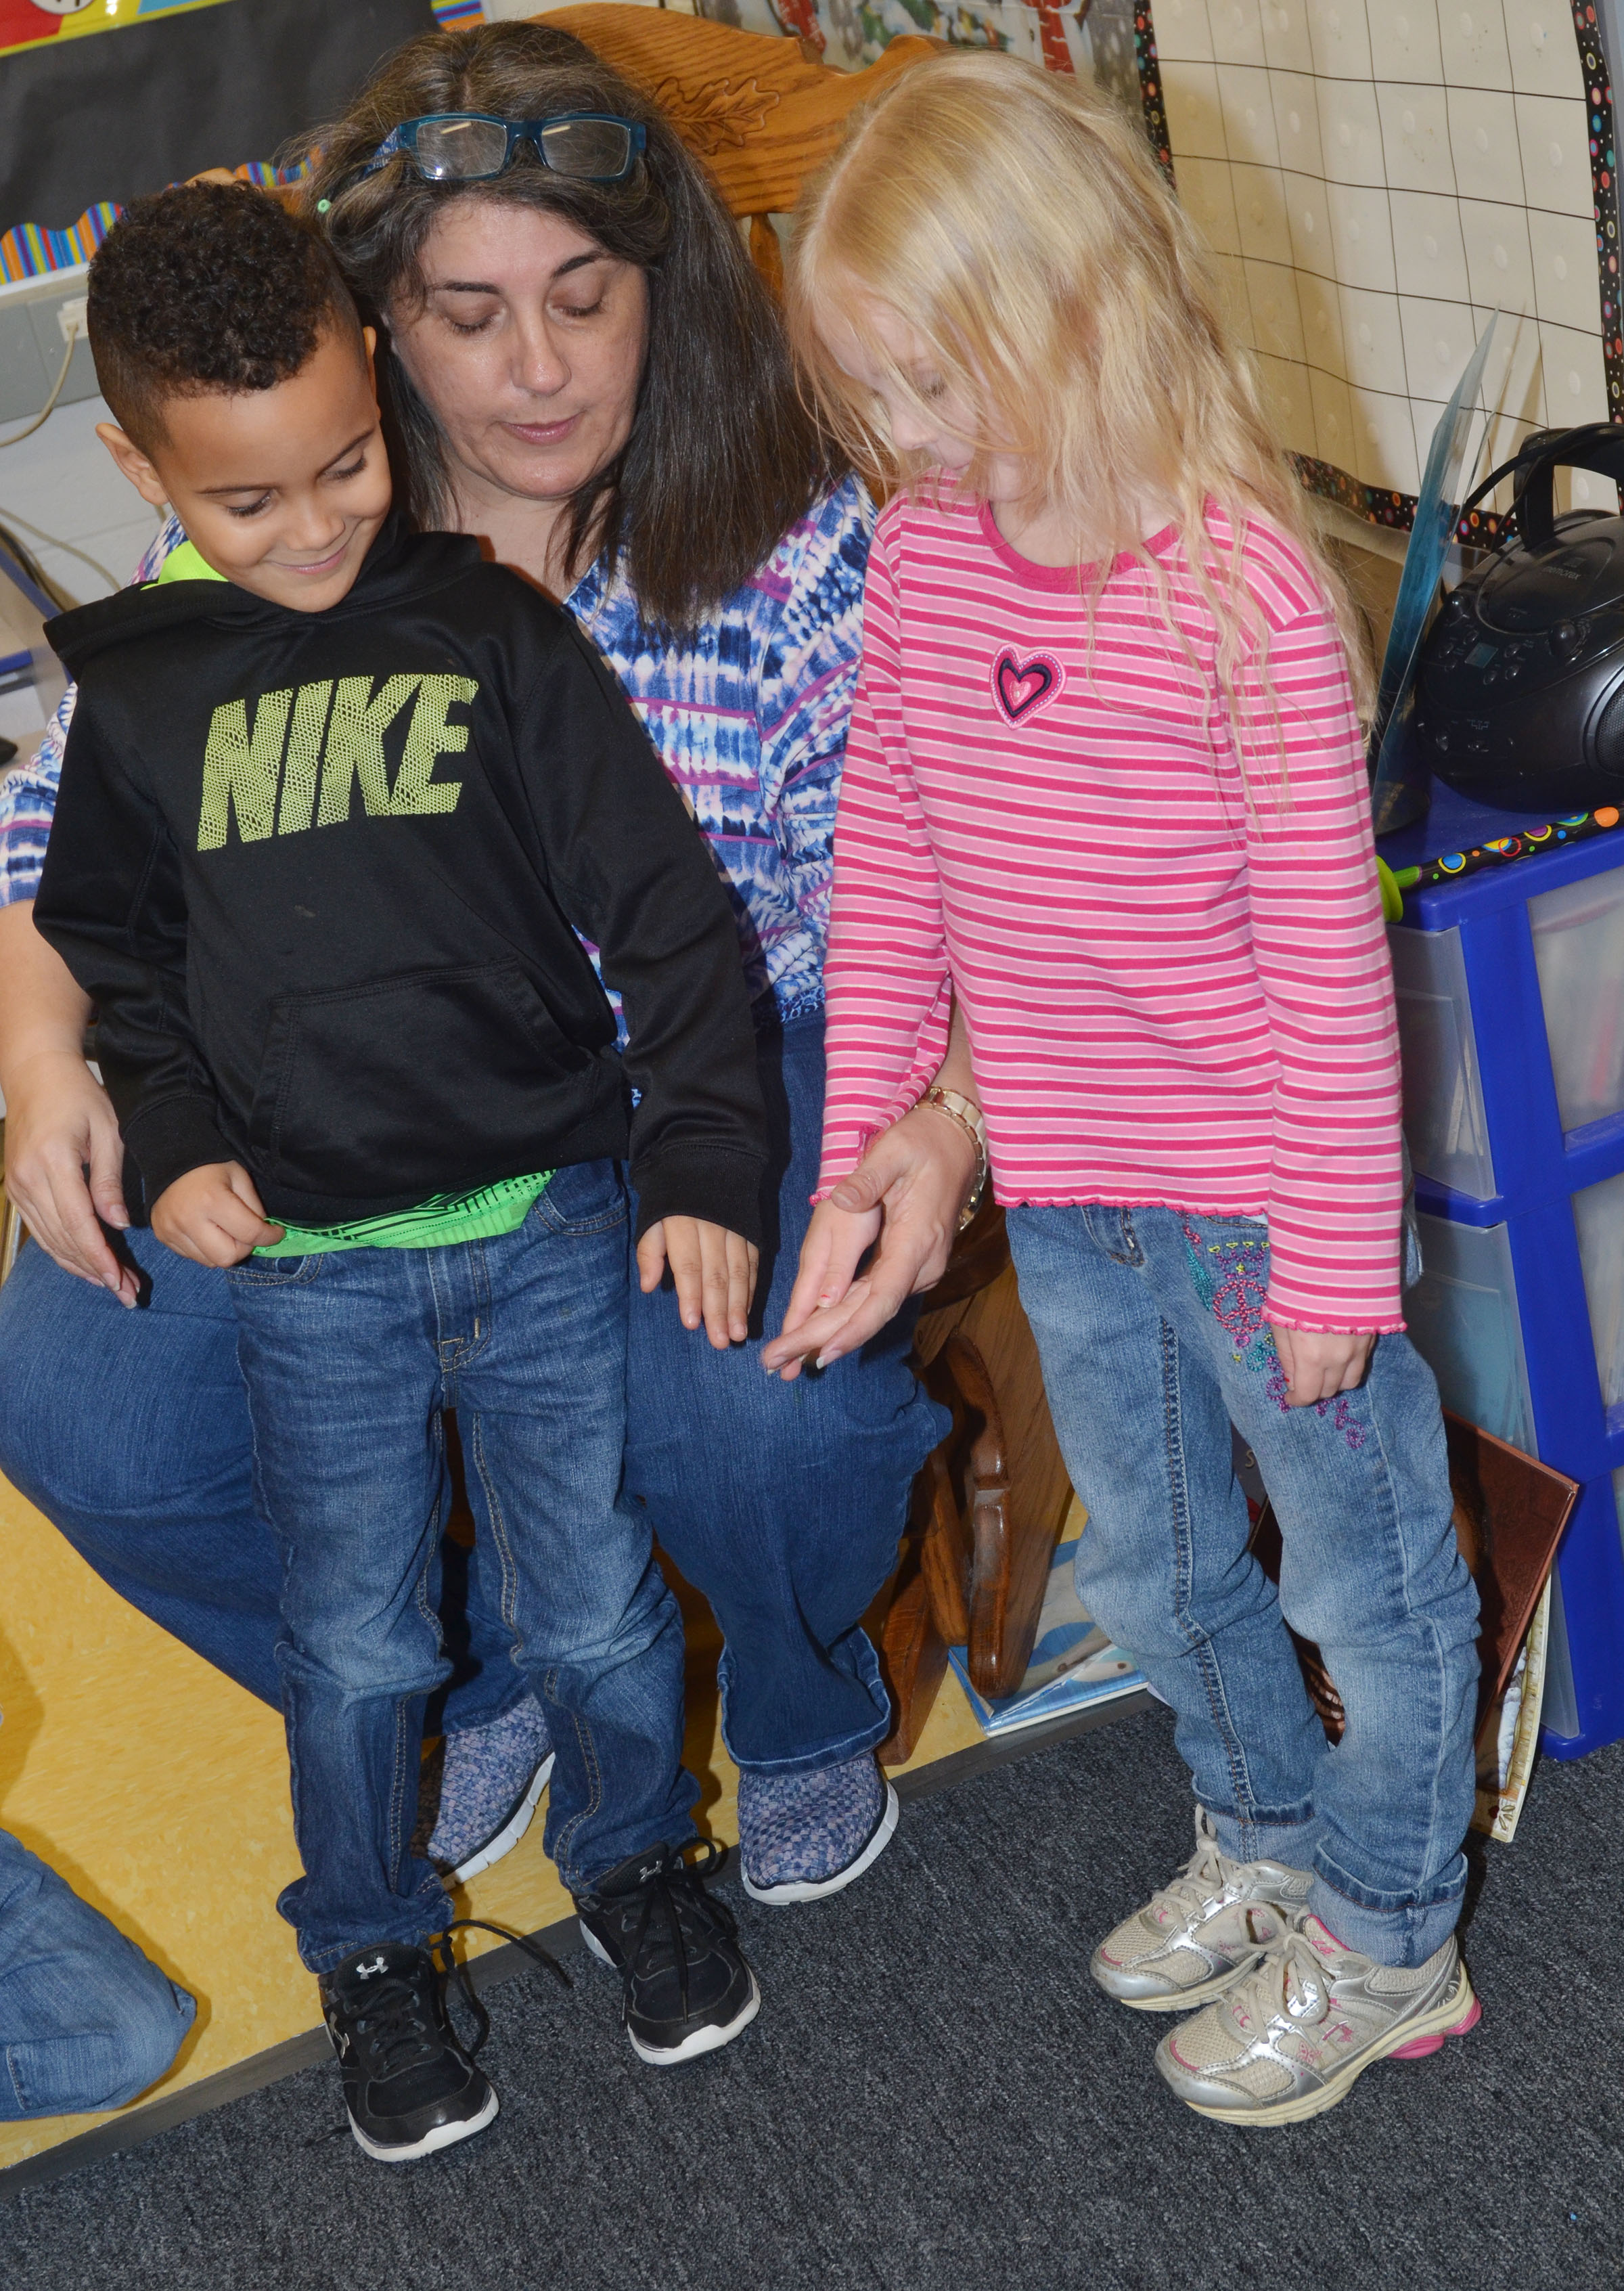 CES preschool teacher Sherry Cowherd places Kingston Cowherd's hands beside Alinna Bray's to see if they are the same color.